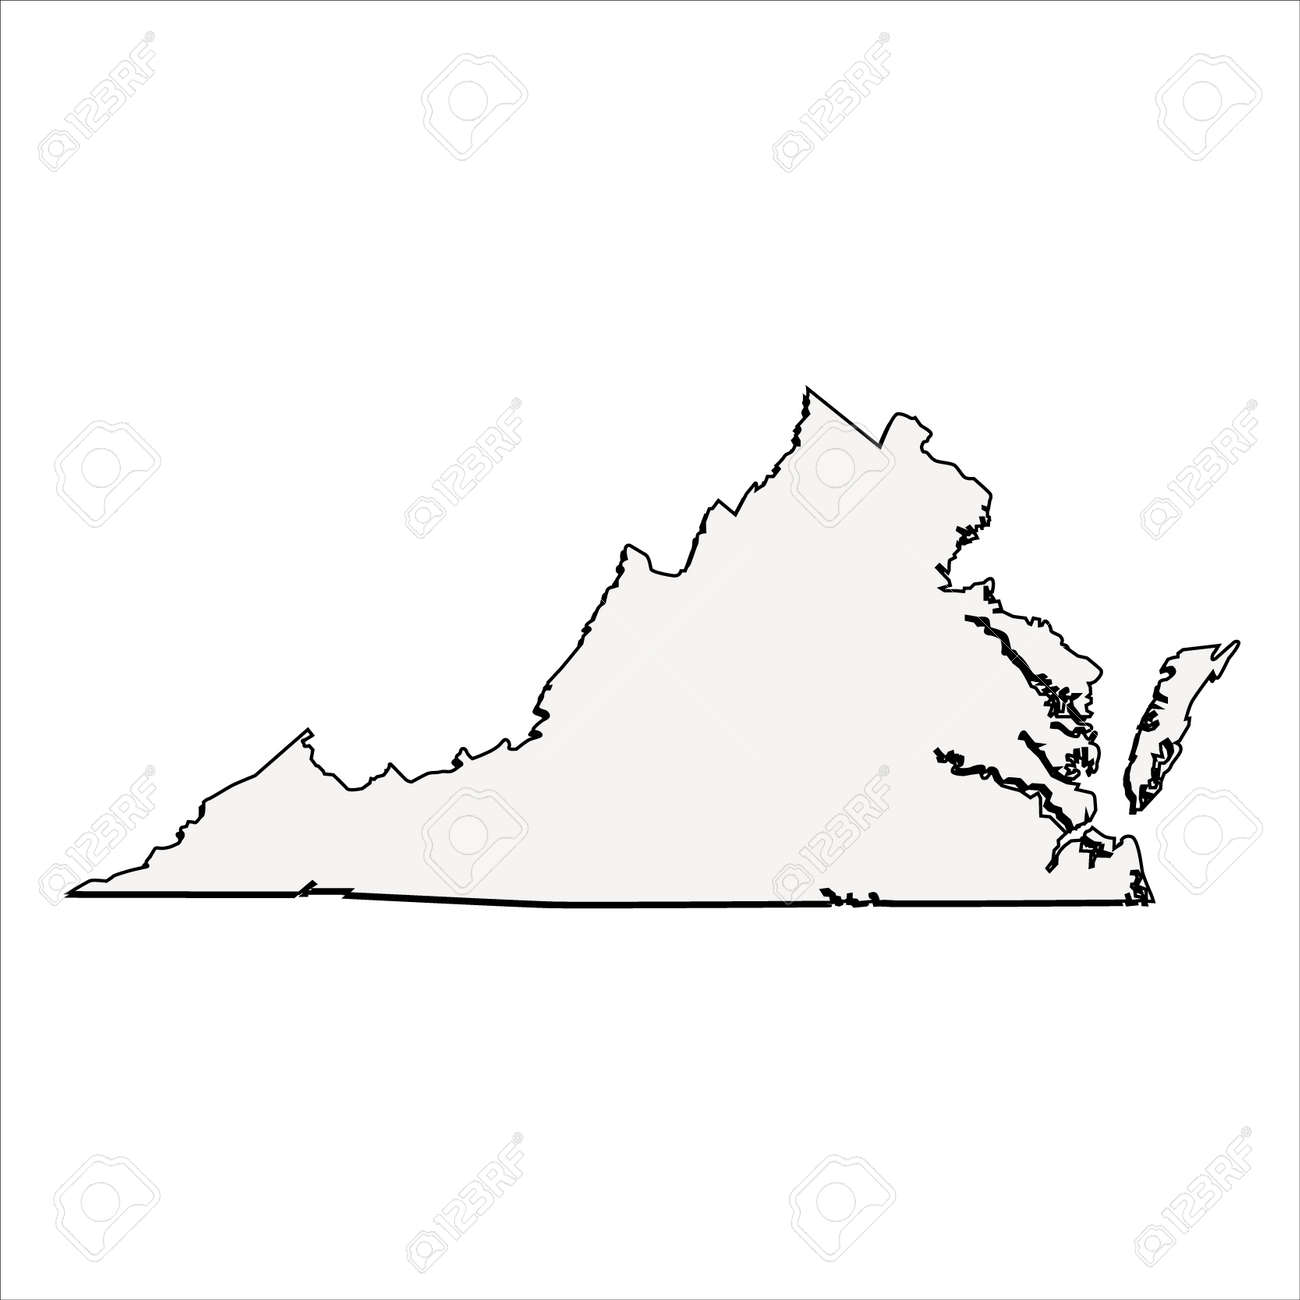 Outline Map Of Virginia.Vector Virginia State 3d Outline Map Royalty Free Cliparts Vectors